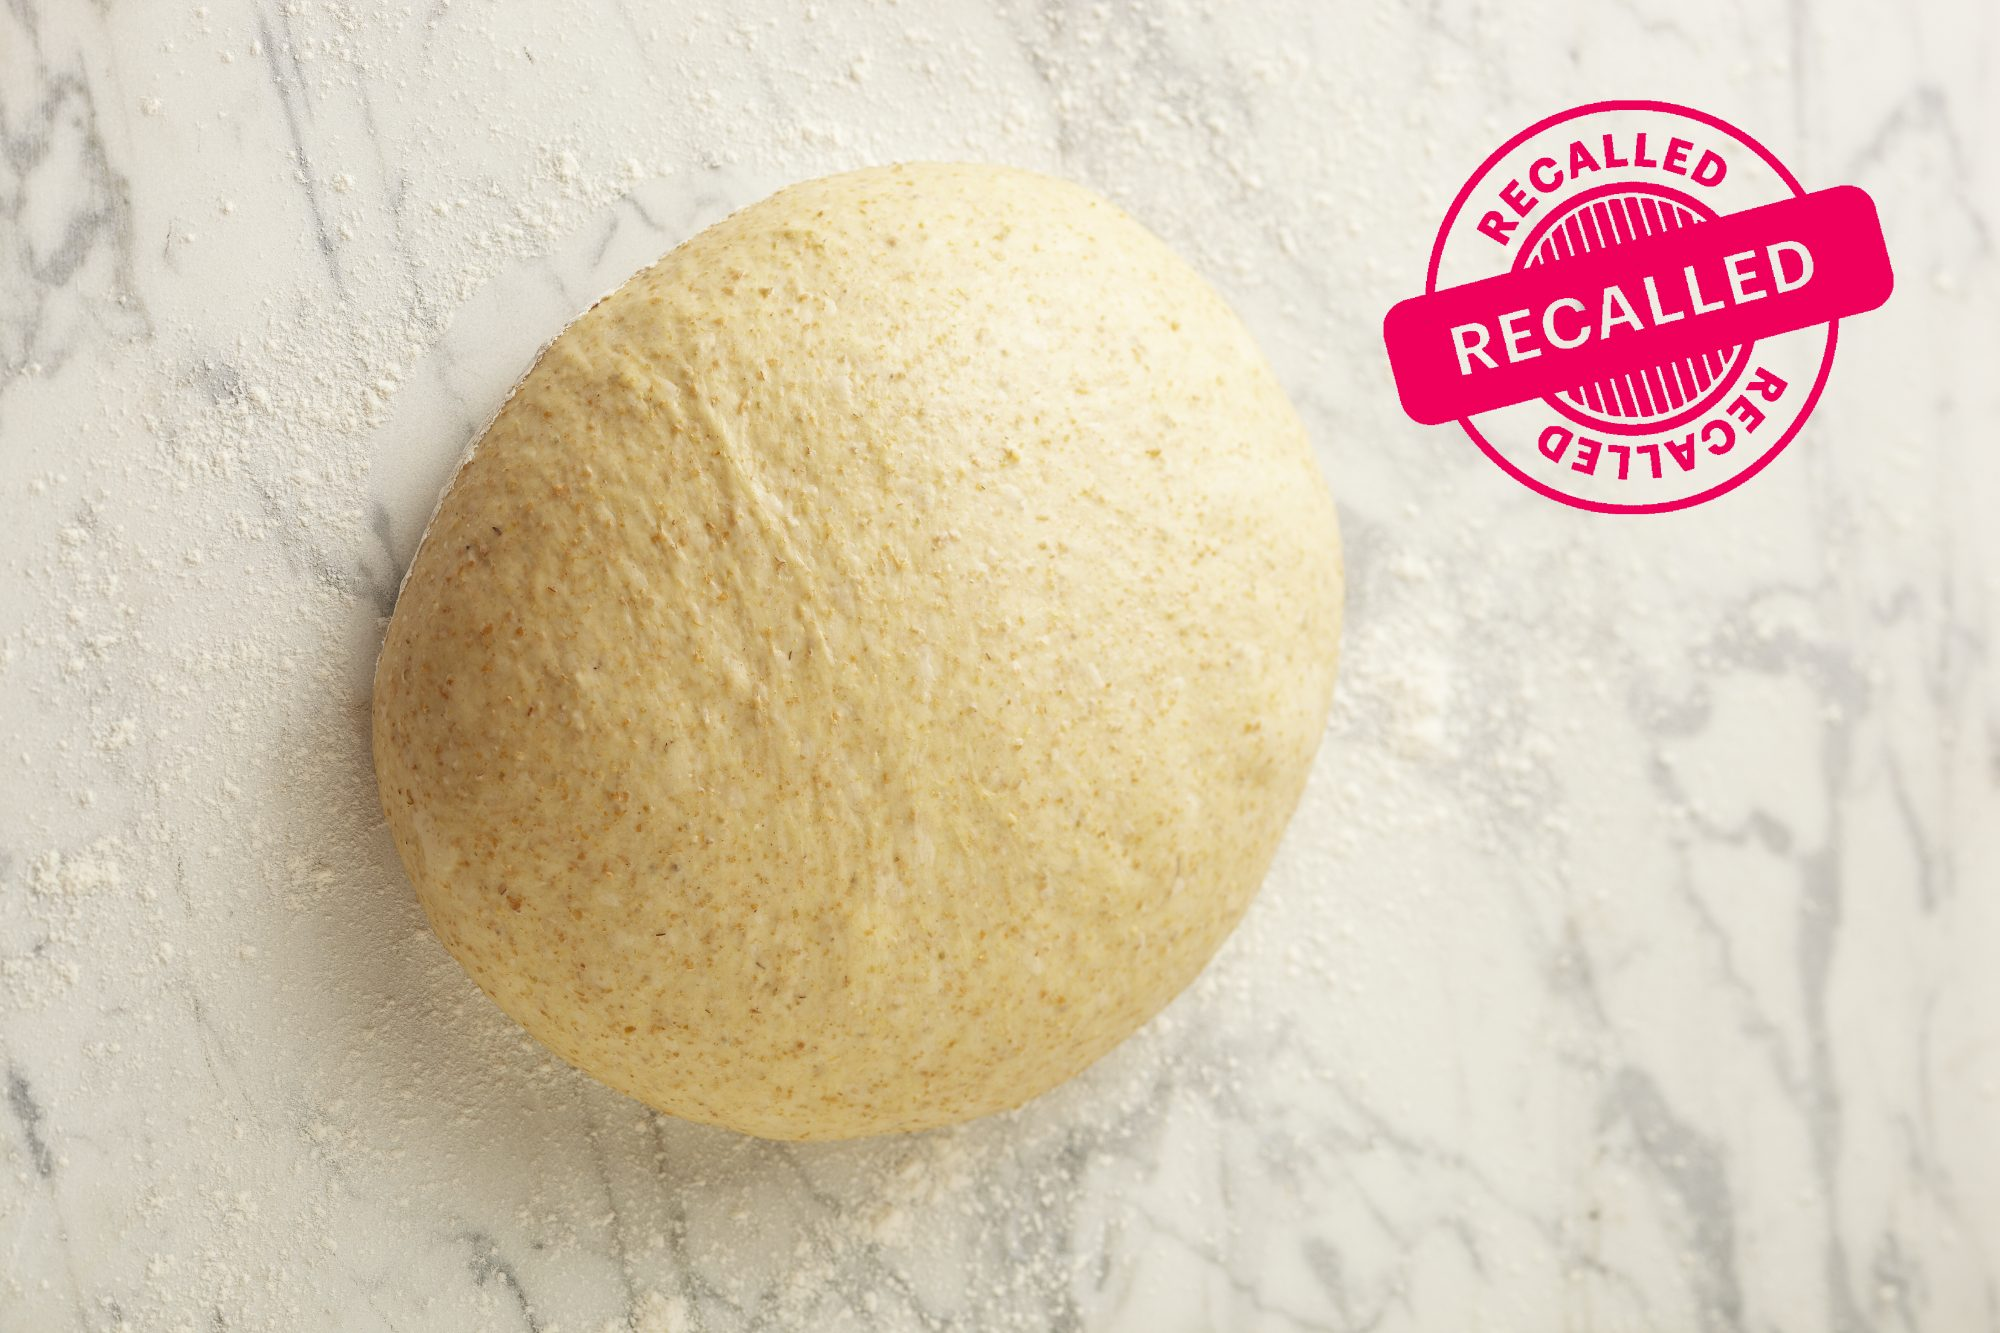 pizza dough with recall stamp